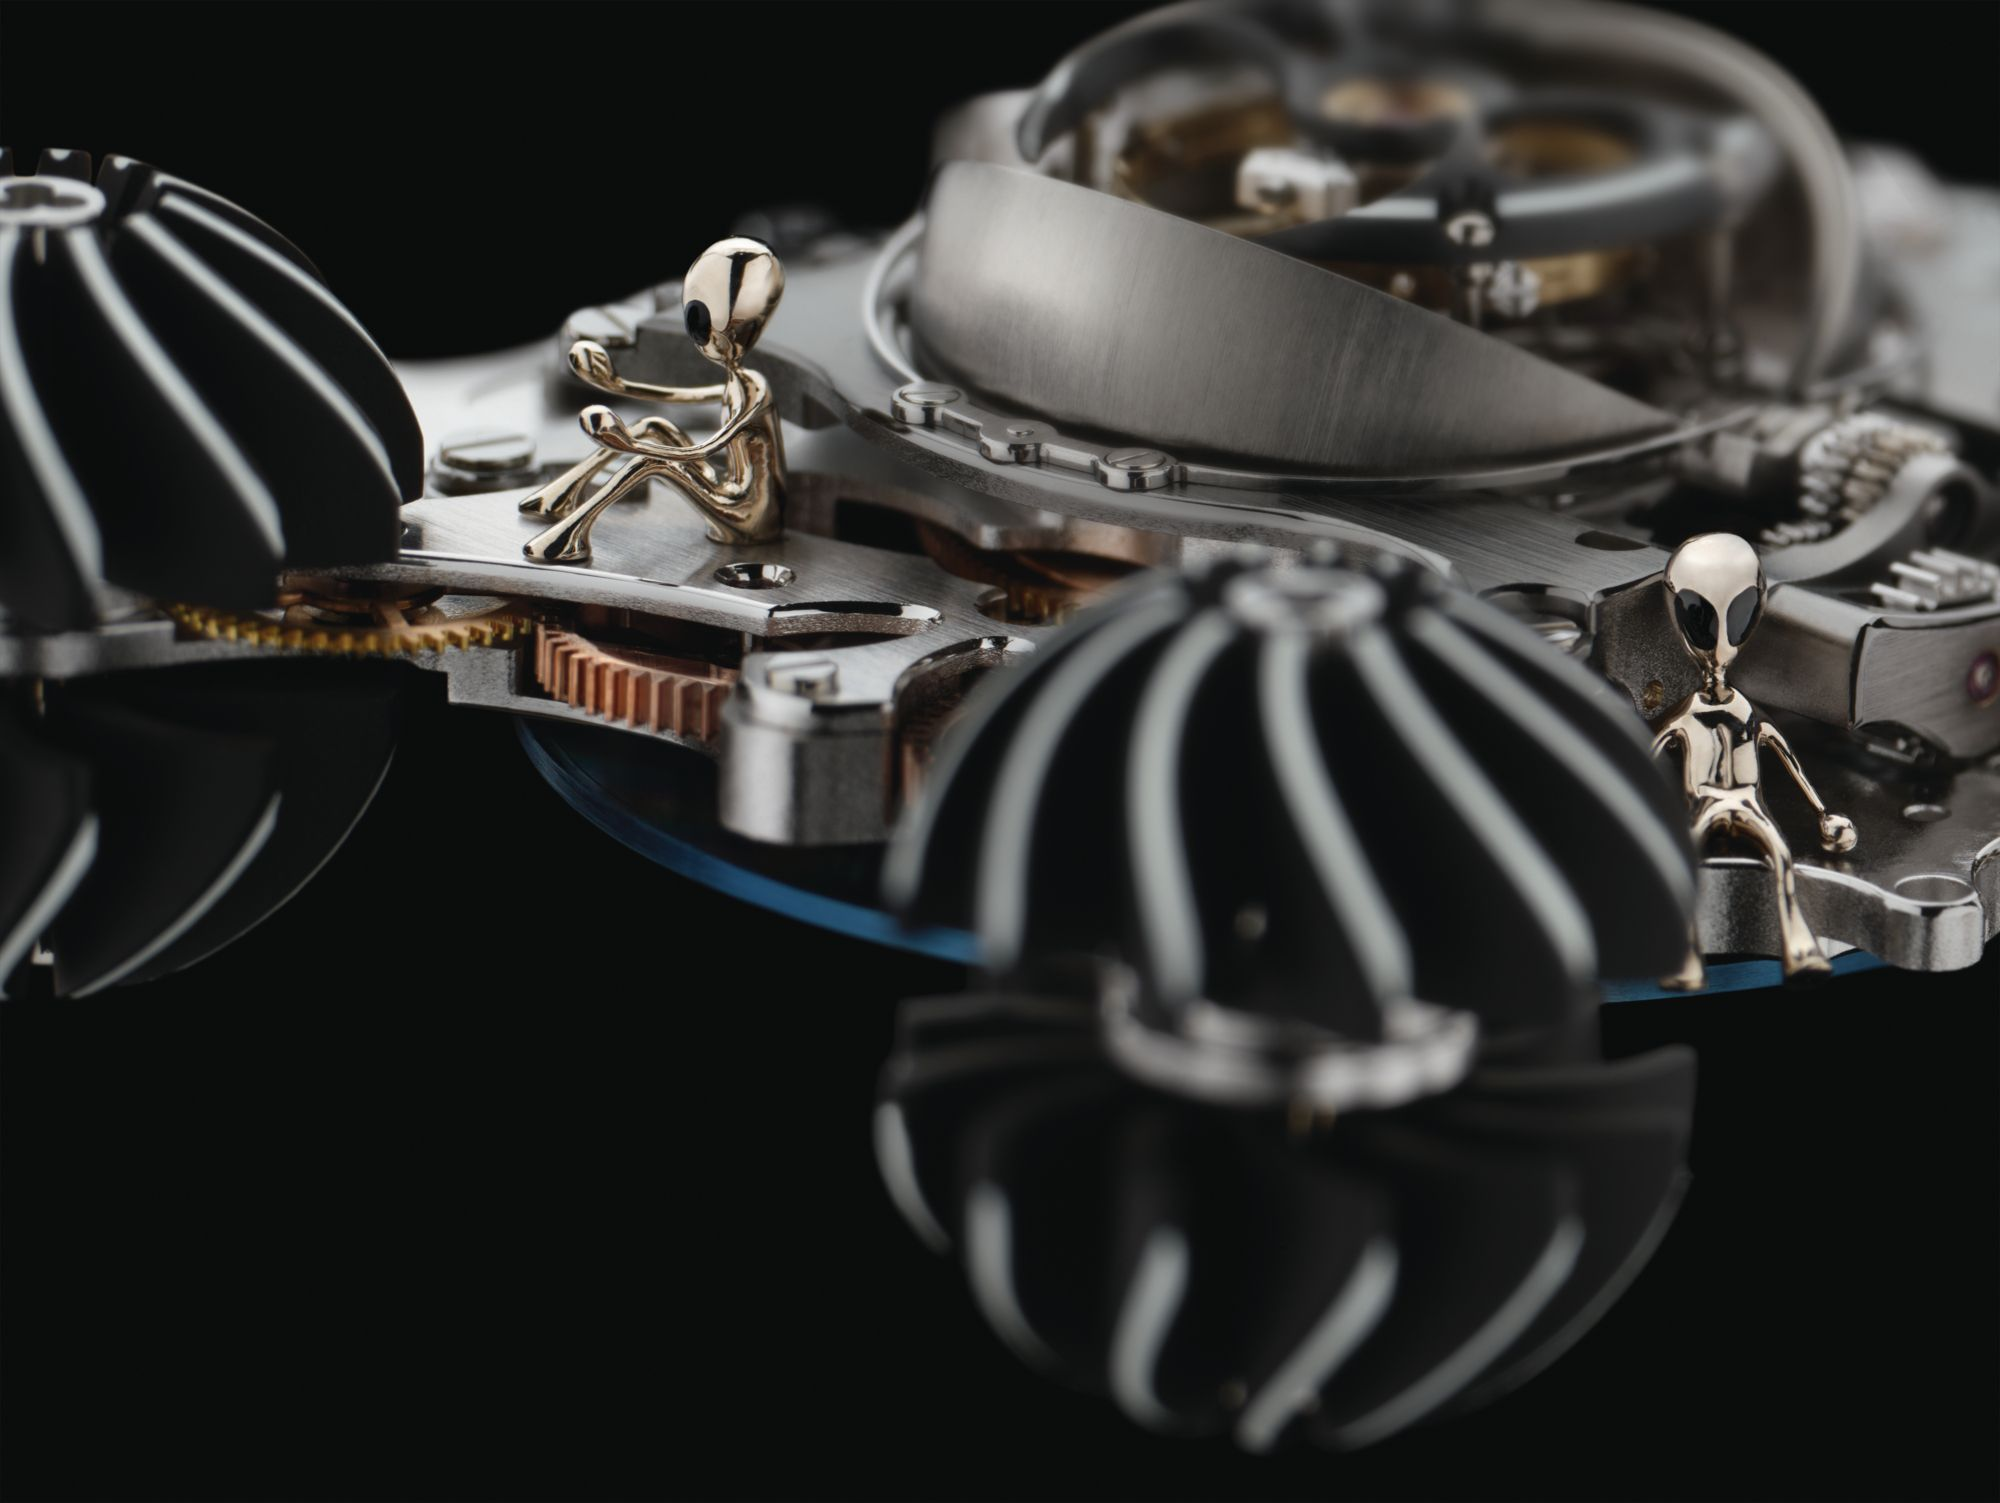 Can Tech Advances Enhance Watchmaking Without Losing the Beauty of Traditional Craftsmanship?